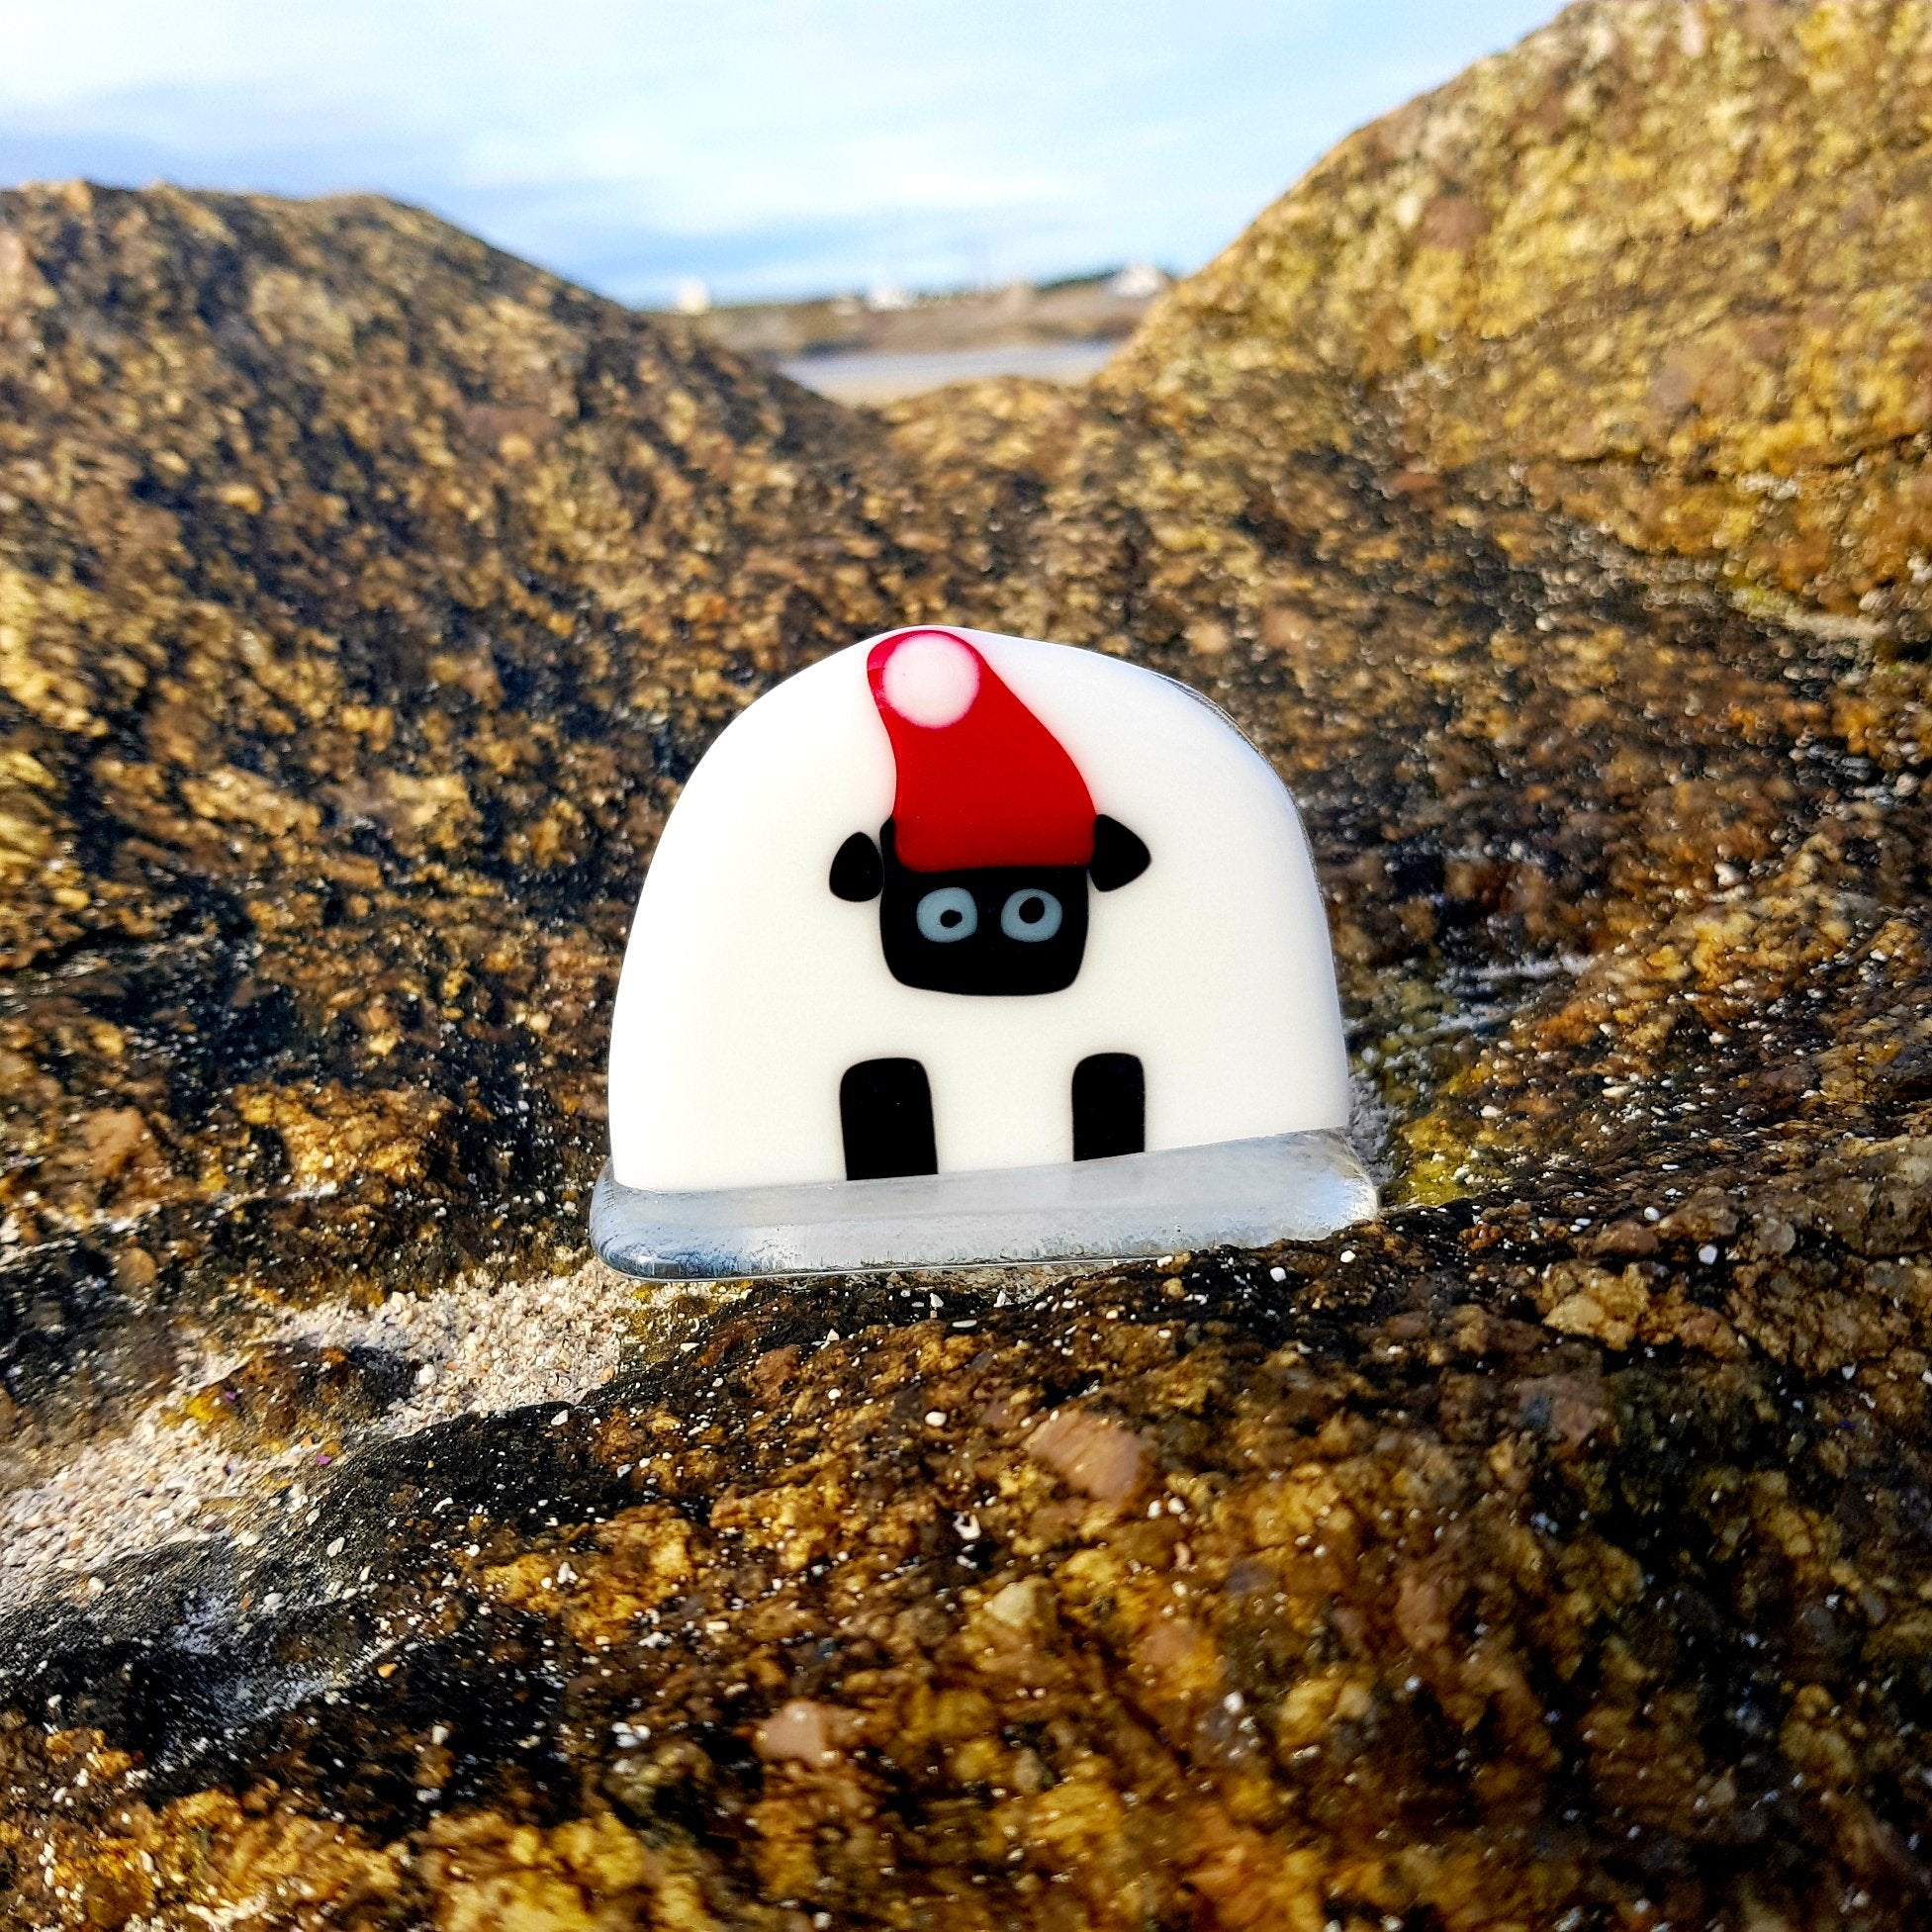 A freestanding fused glass Connemara sheep with a Santa hat, made by Connemara Blue